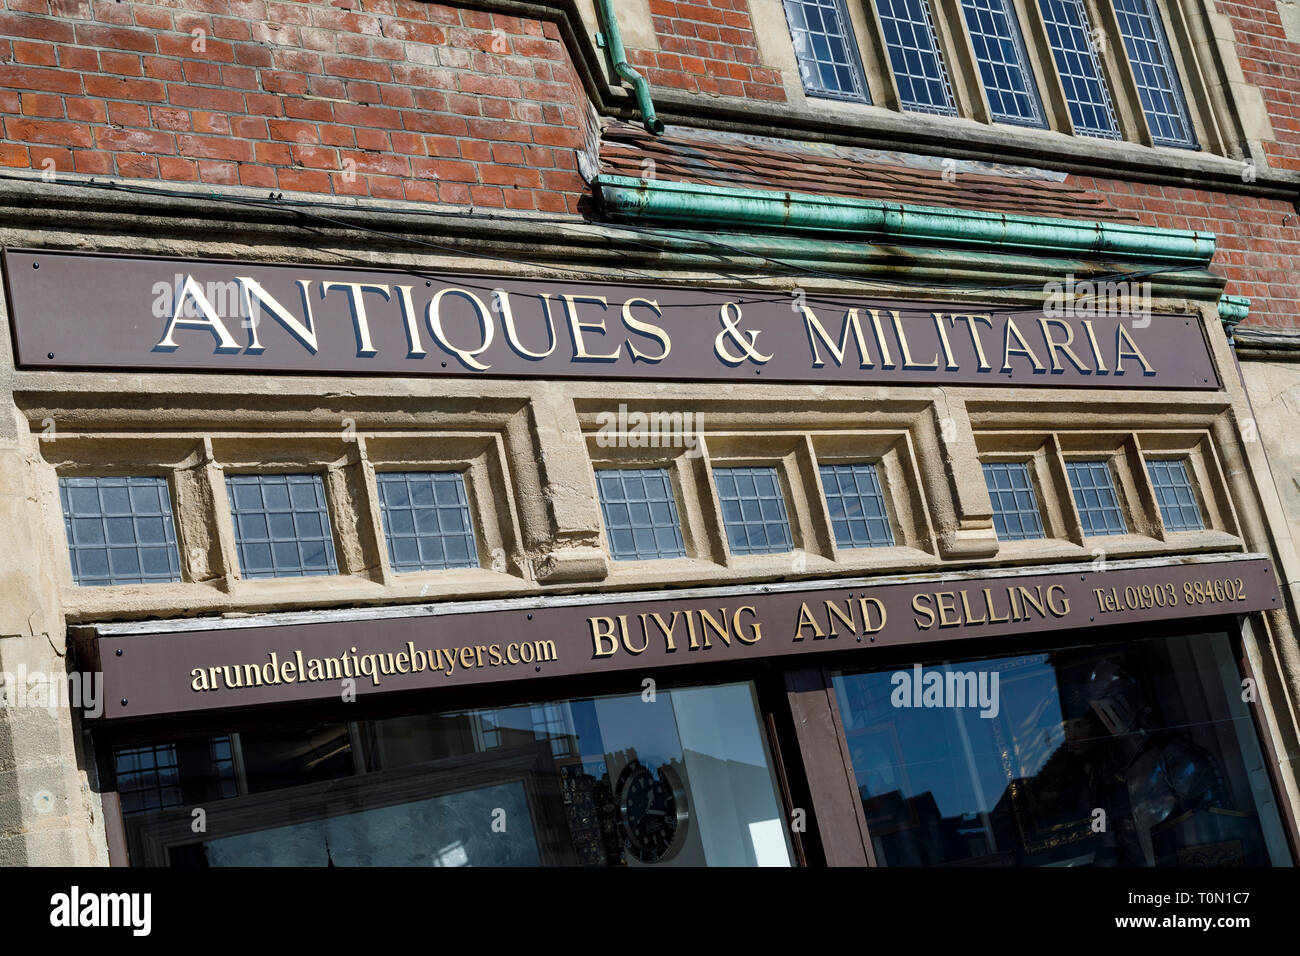 Antiques and Militaria store in Arundel, West Sussex, UK. - Stock Image